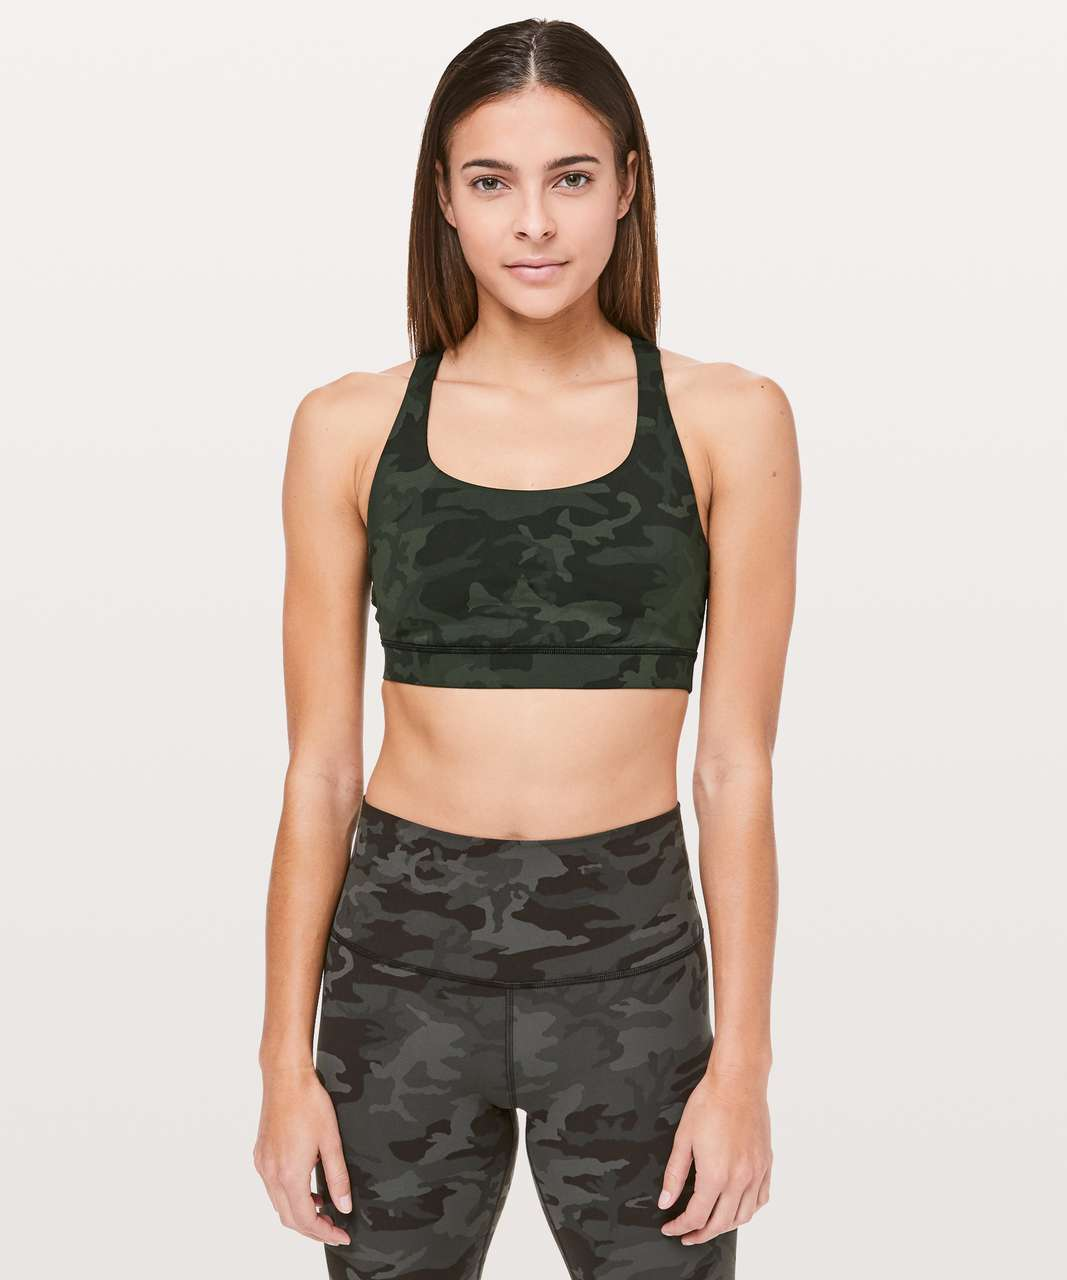 Lululemon Energy Bra - Incognito Camo Multi Gator Green